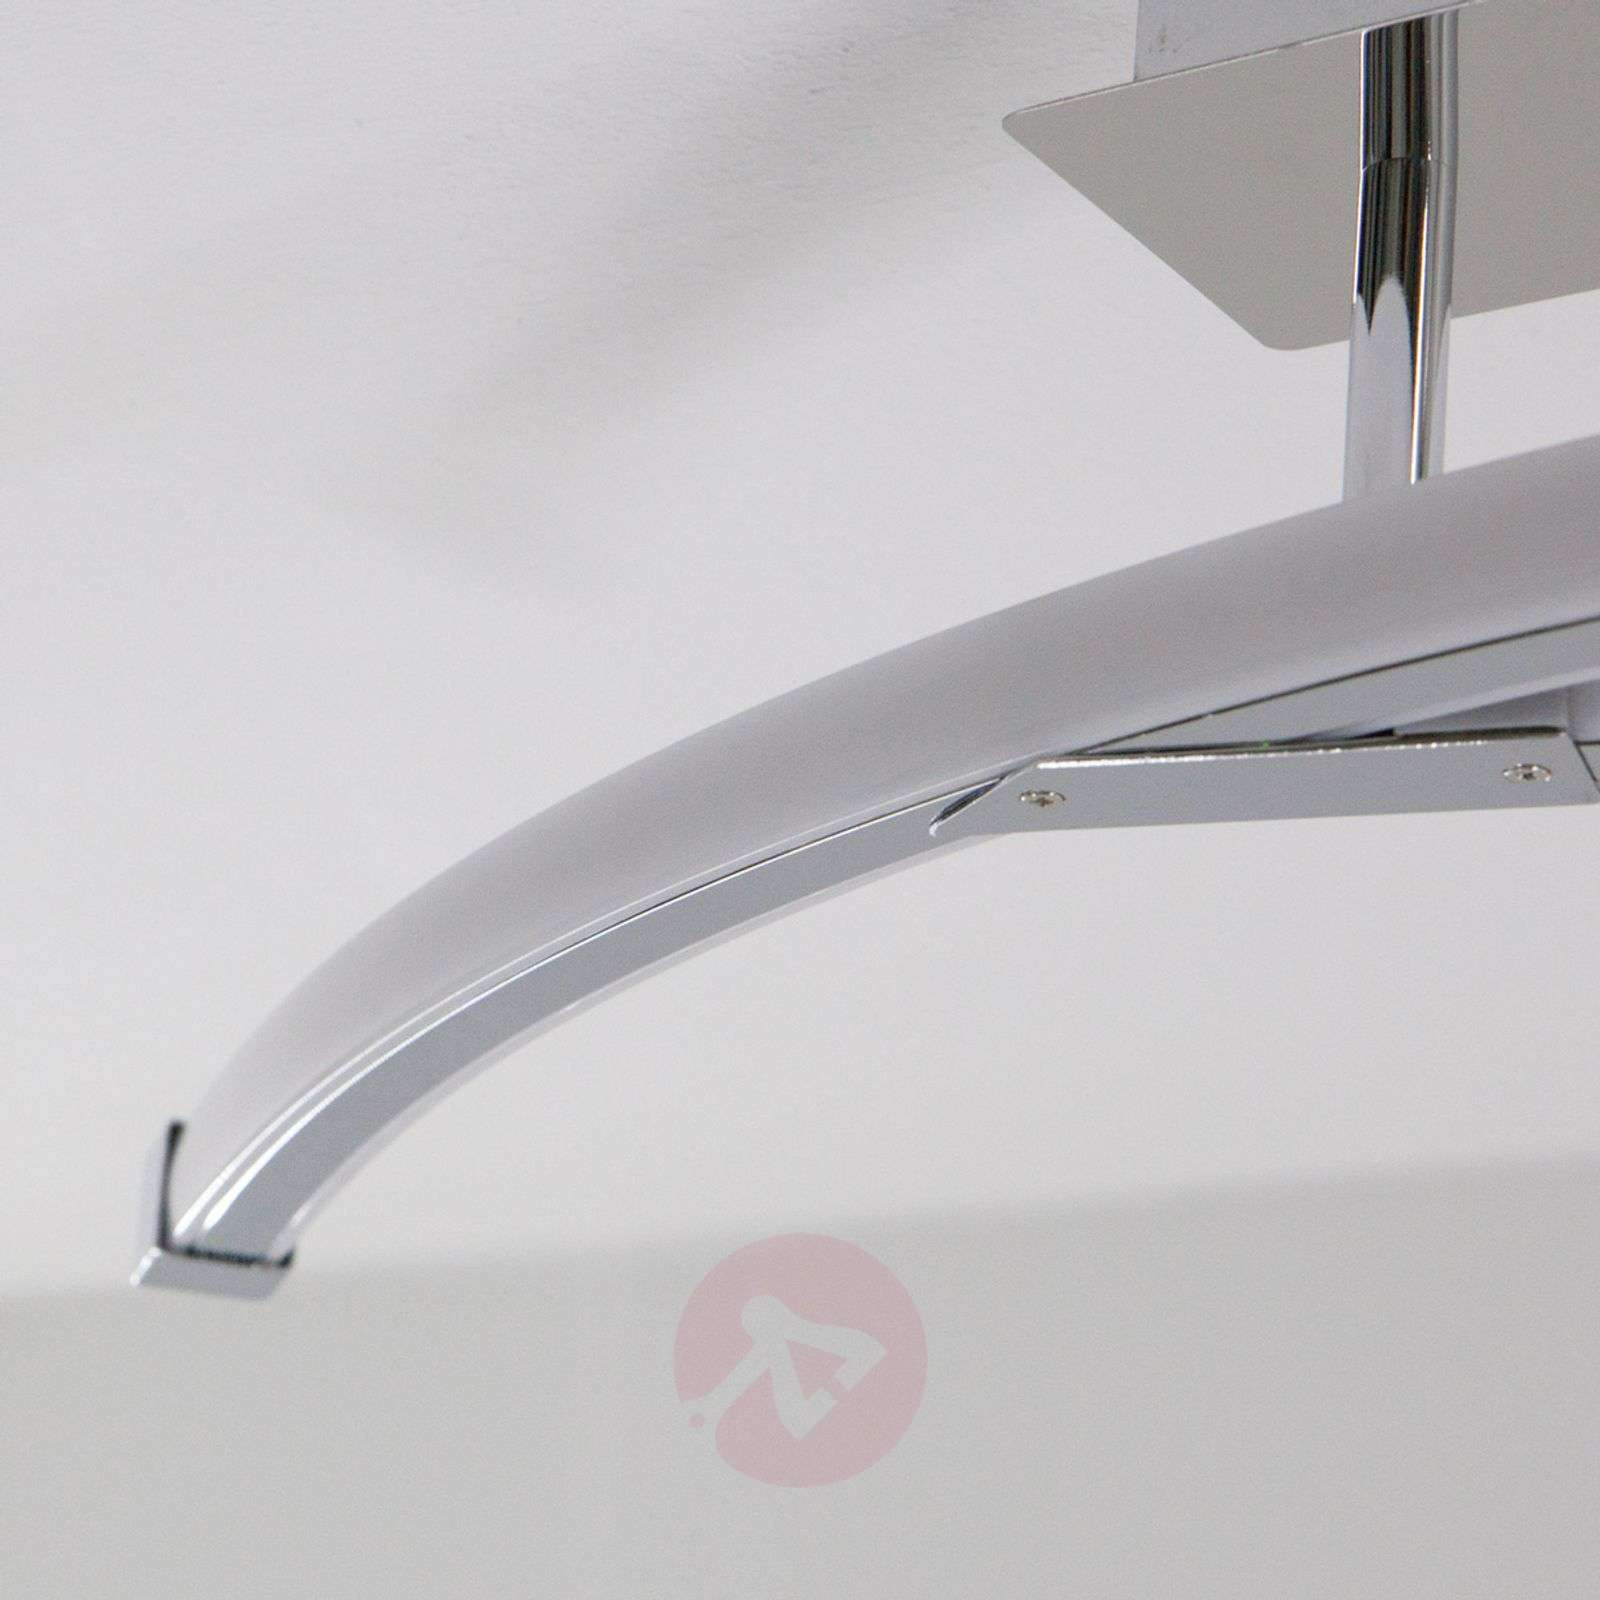 Bright Jealyn LED ceiling light-9981013-01